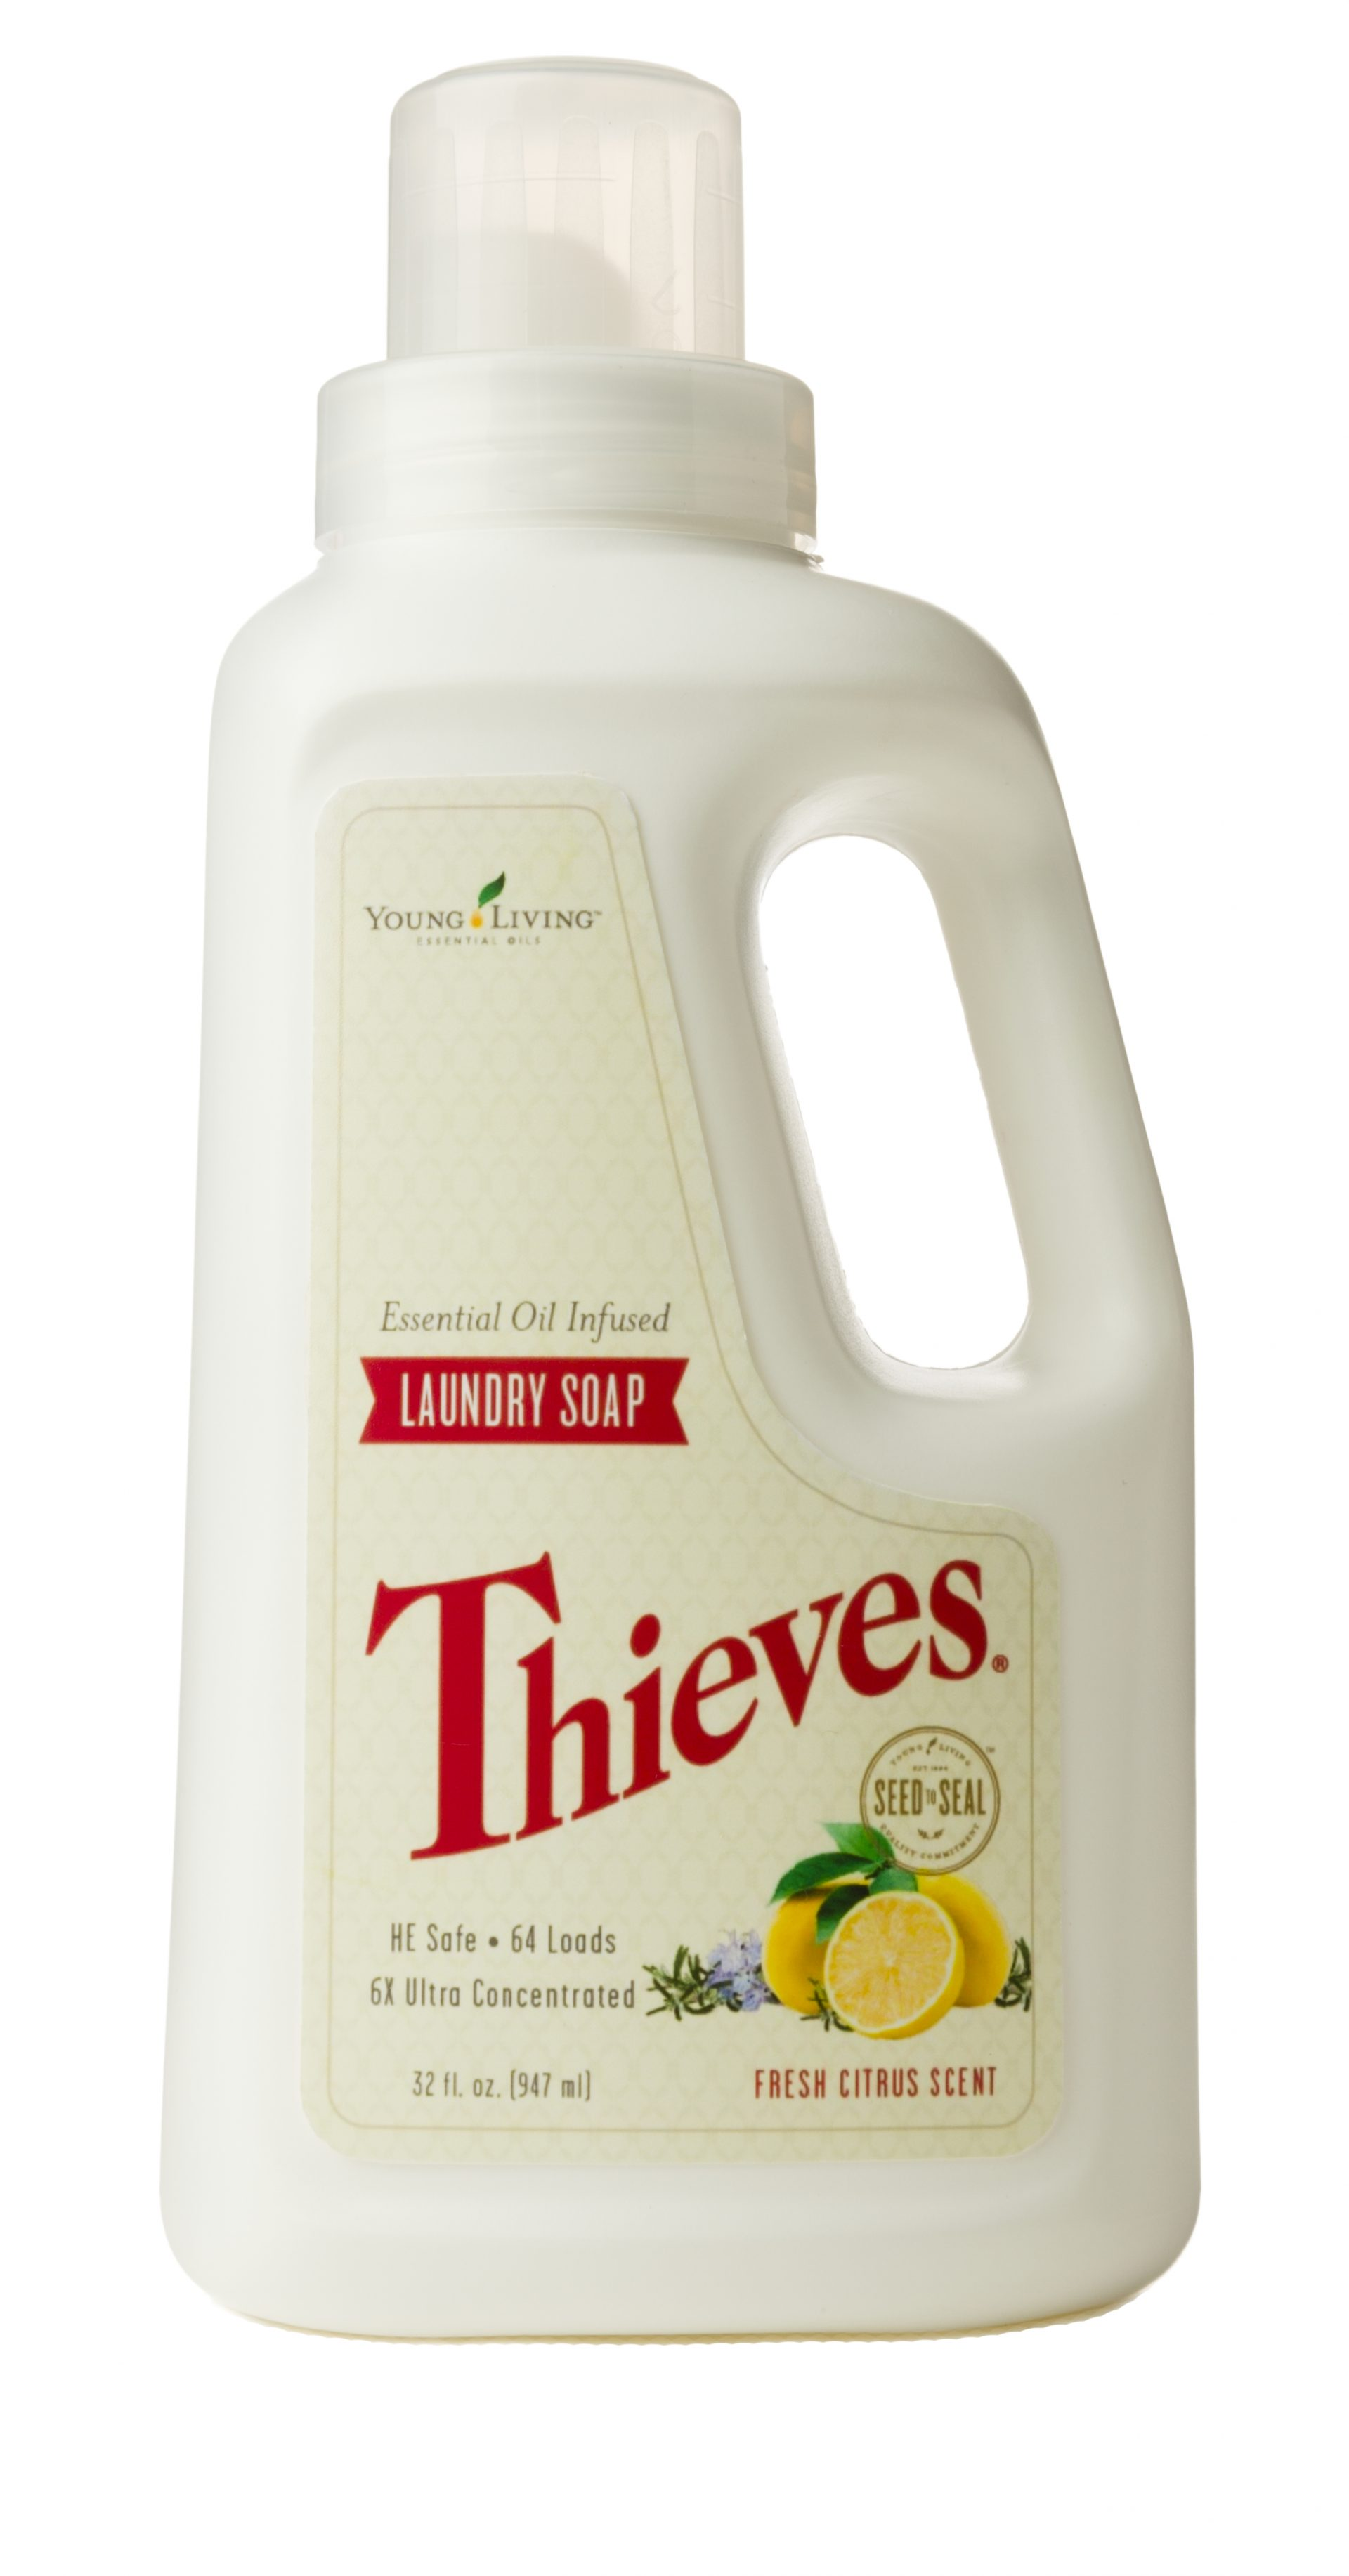 https://www.youngliving.com/en_US/products/thieves-laundry-soap